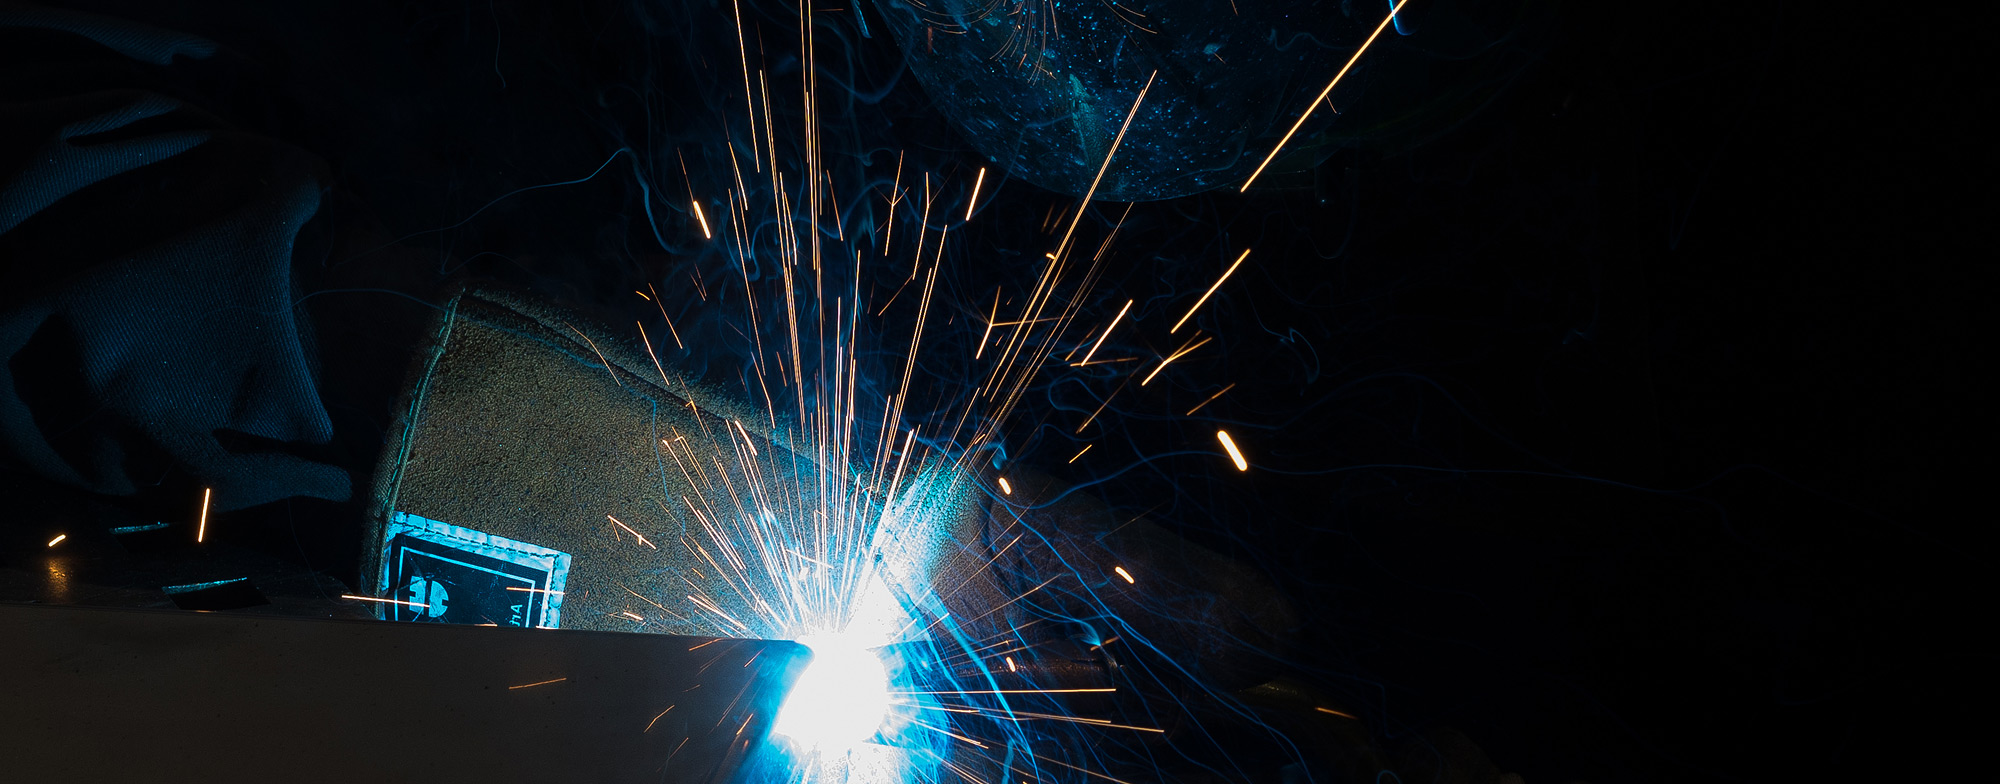 Premec offers various welding services